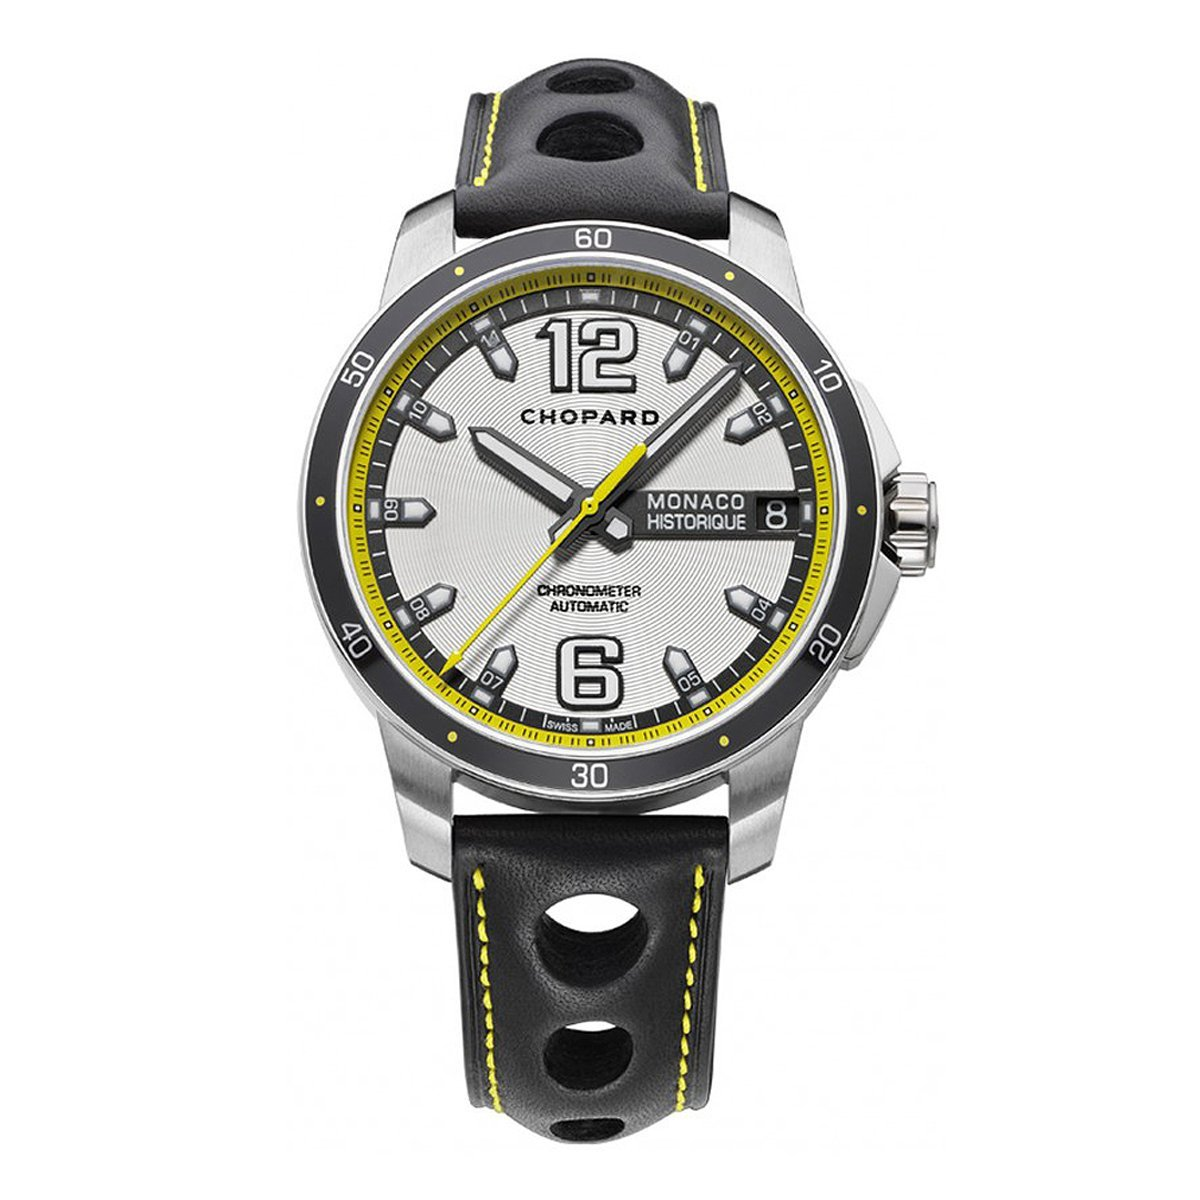 Chopard Grand Prix Monaco Historique Men's Watch Titanium Leather - Watches & Crystals